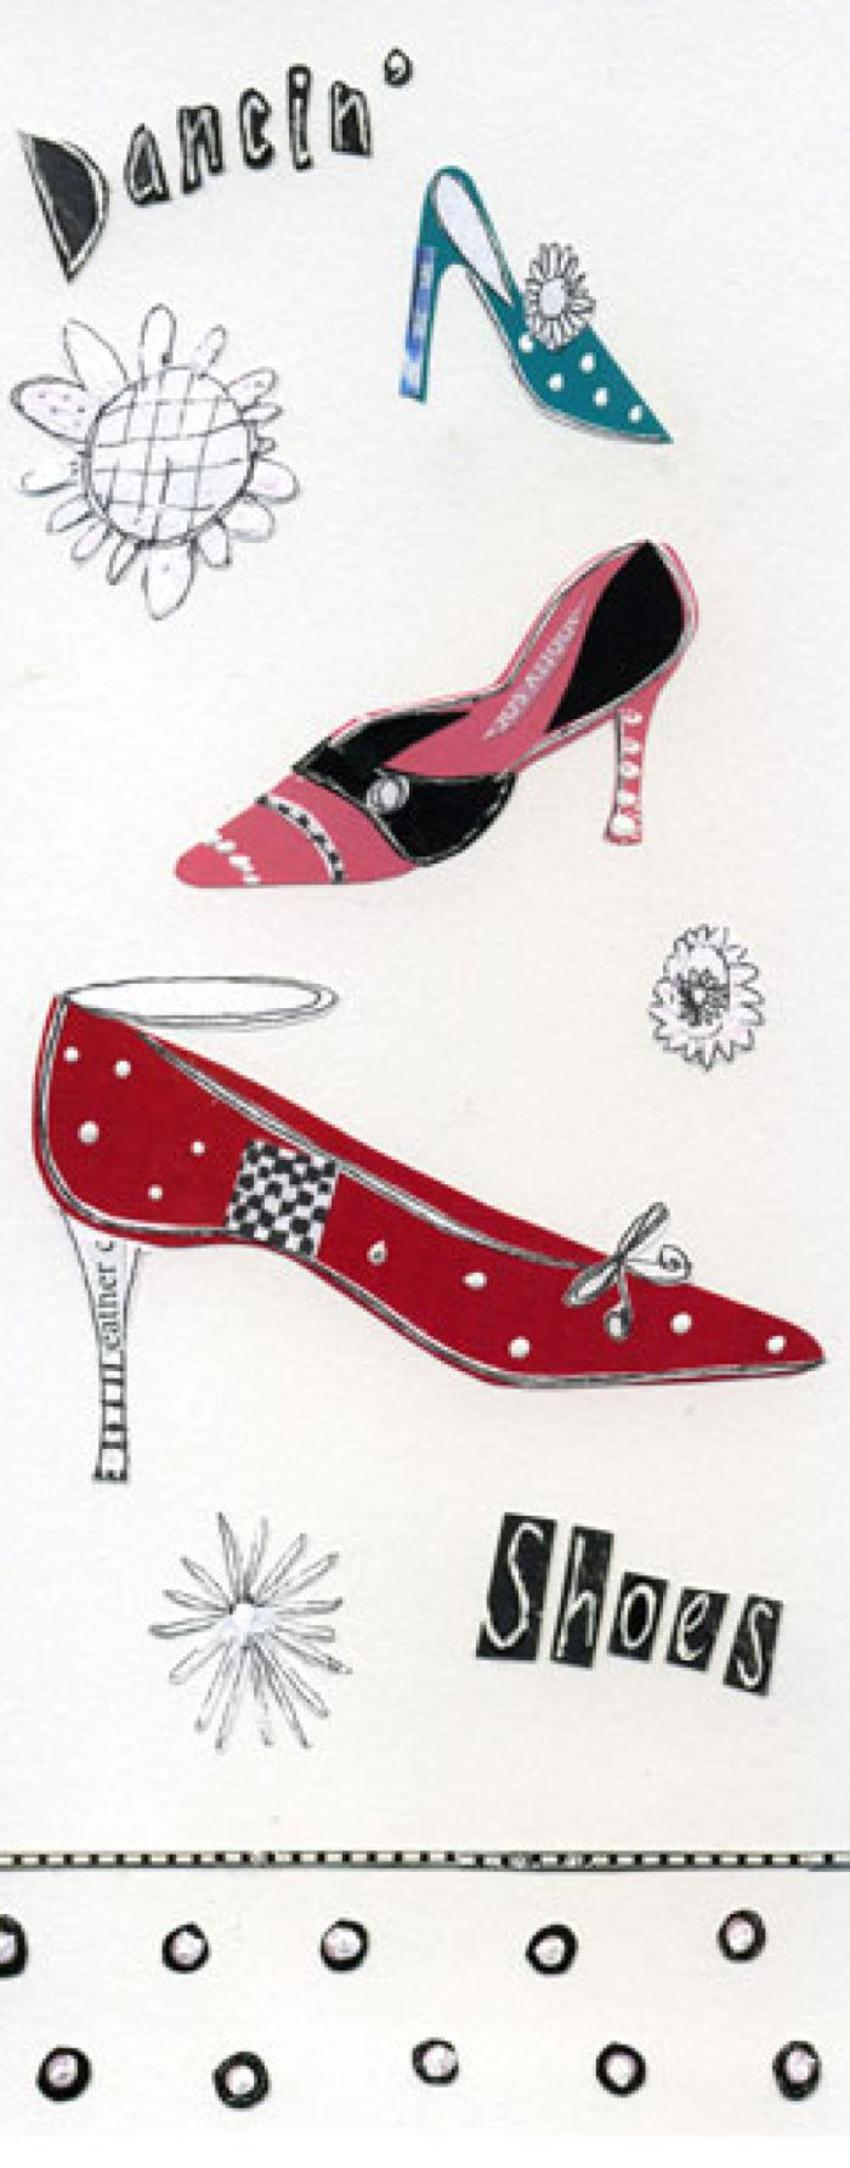 popes funky shoes copy 1.jpg